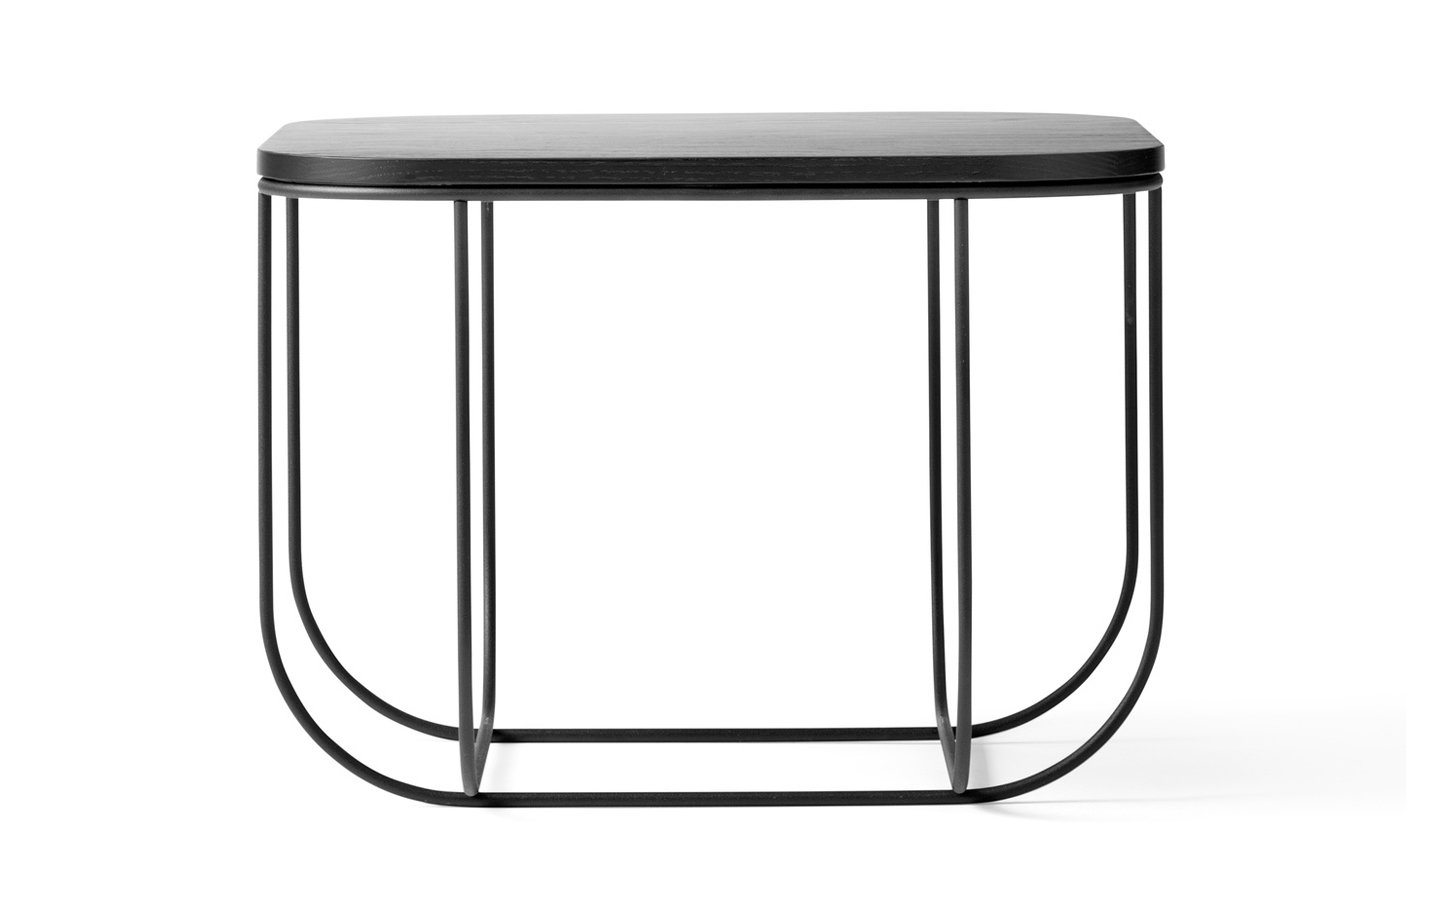 FUWL Cage Series table – black